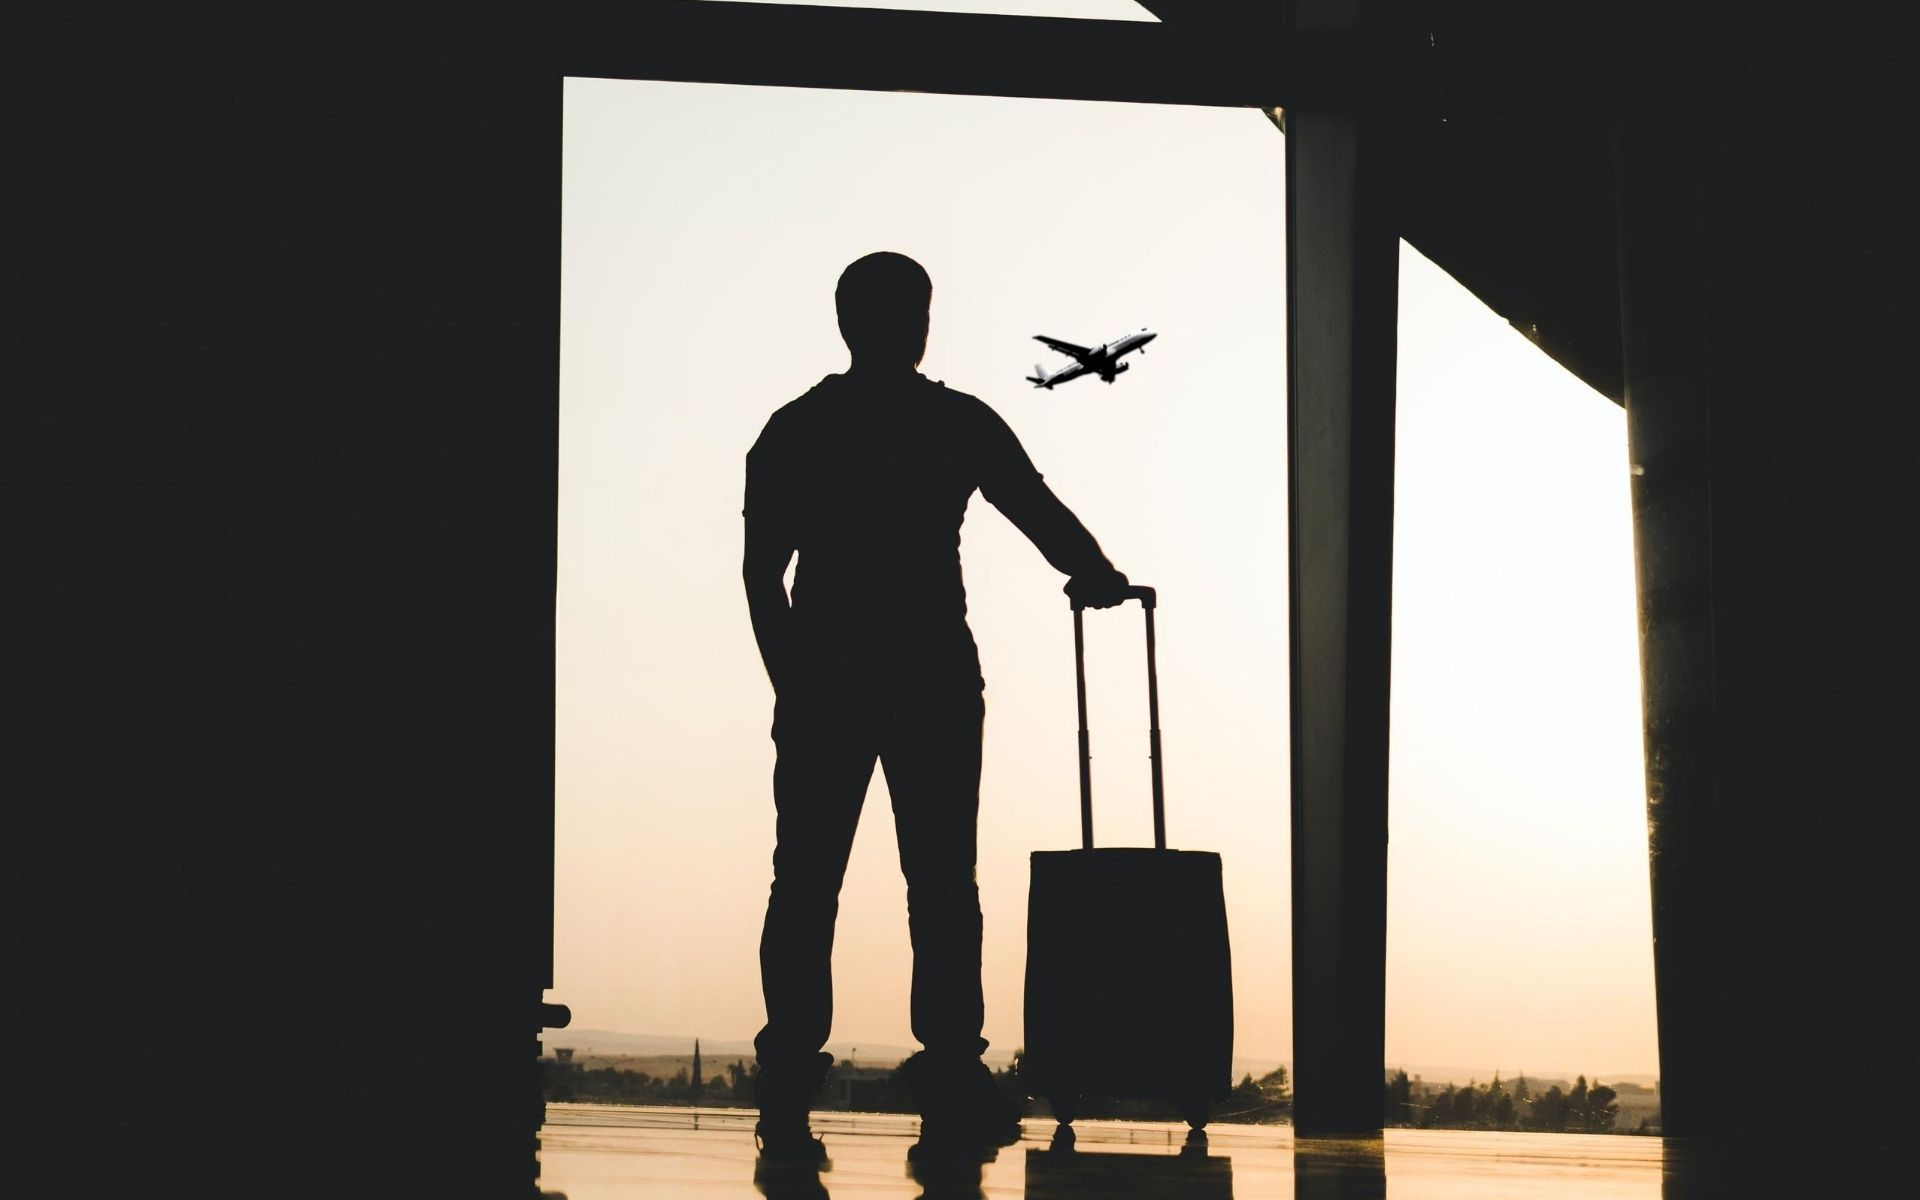 How Not Being Able To Travel Affects Mental Health